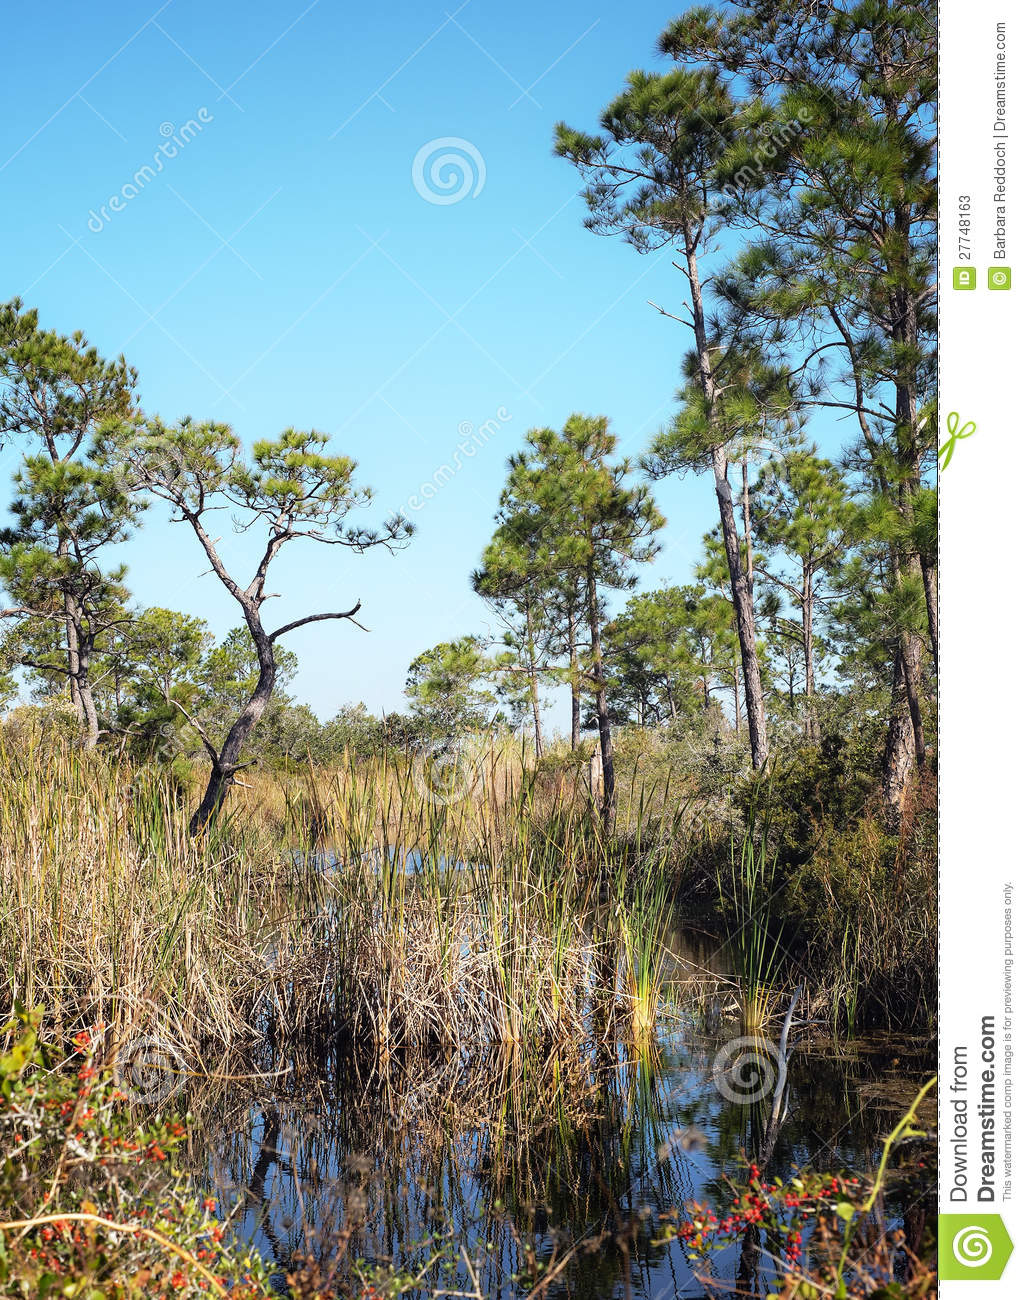 Florida Wetlands with Pine Trees Landscape